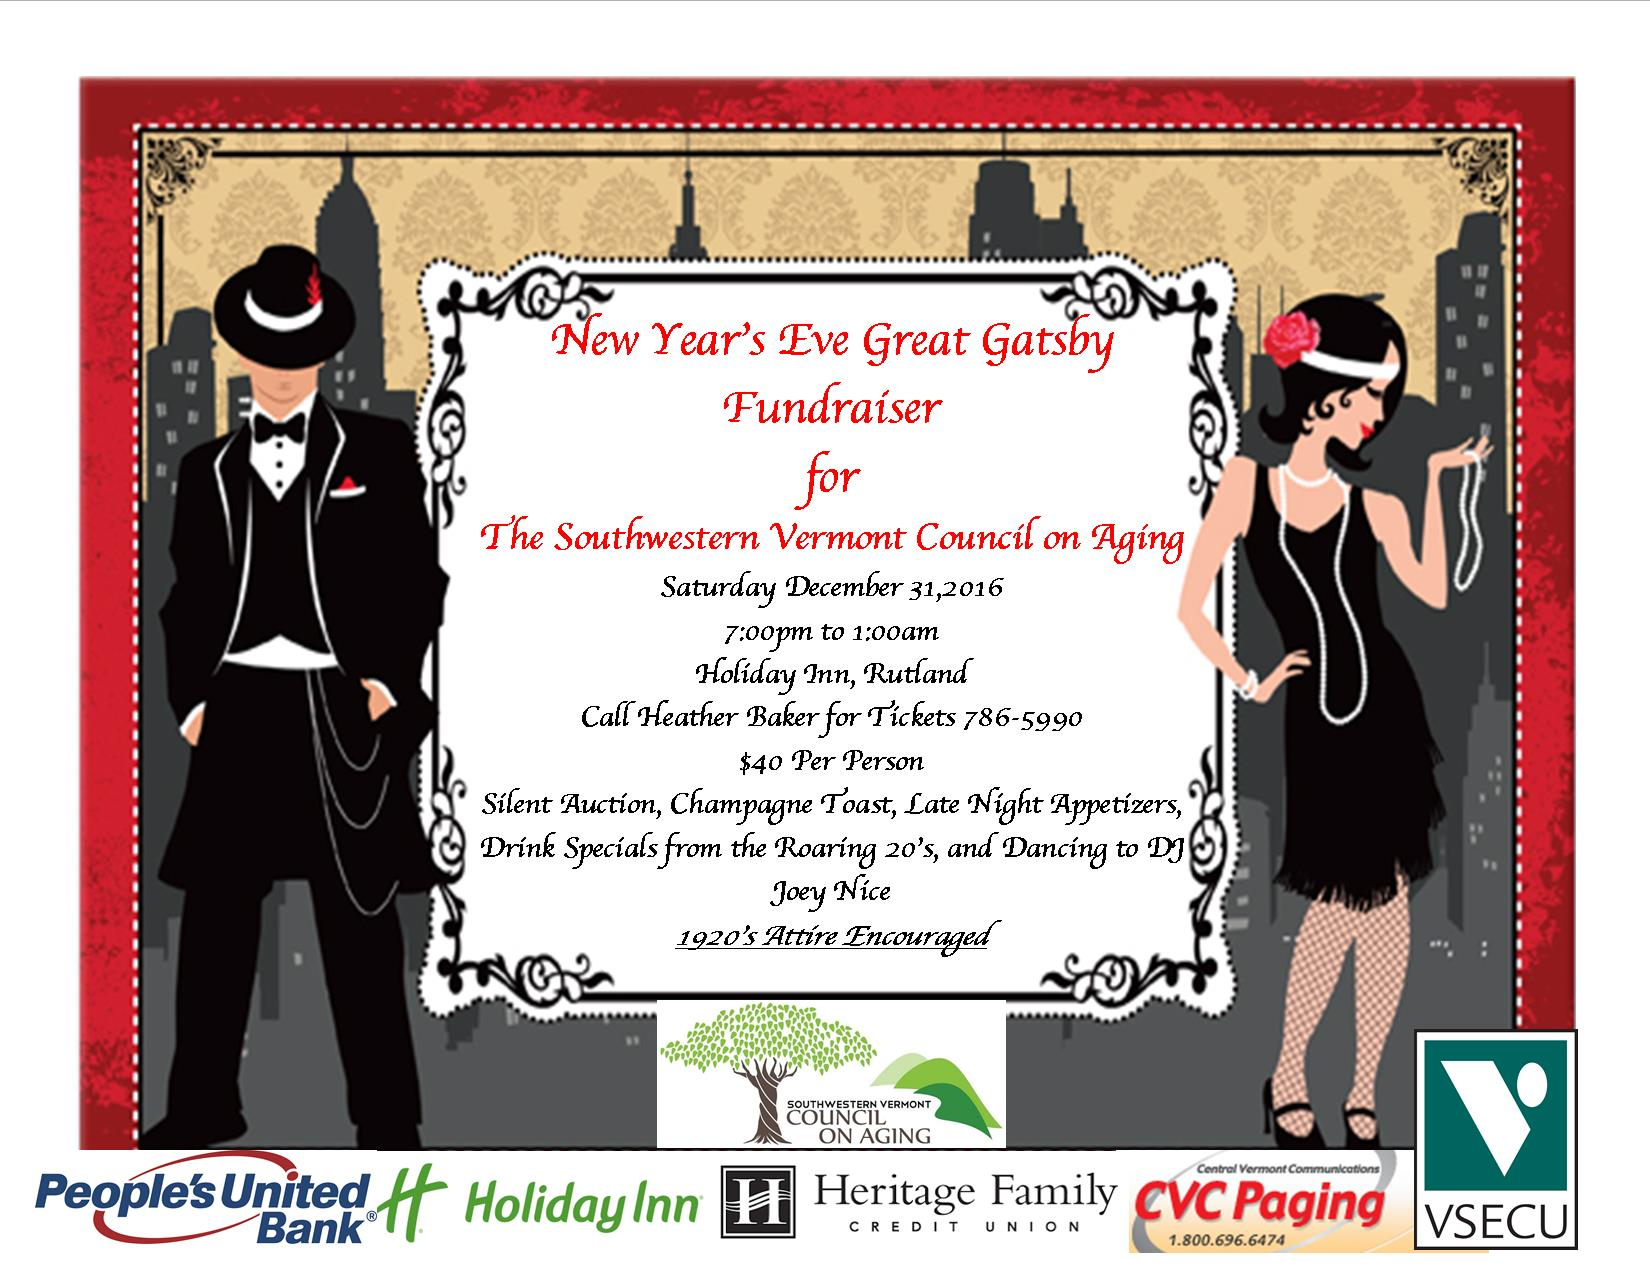 new years eve great gatsby fundraiser